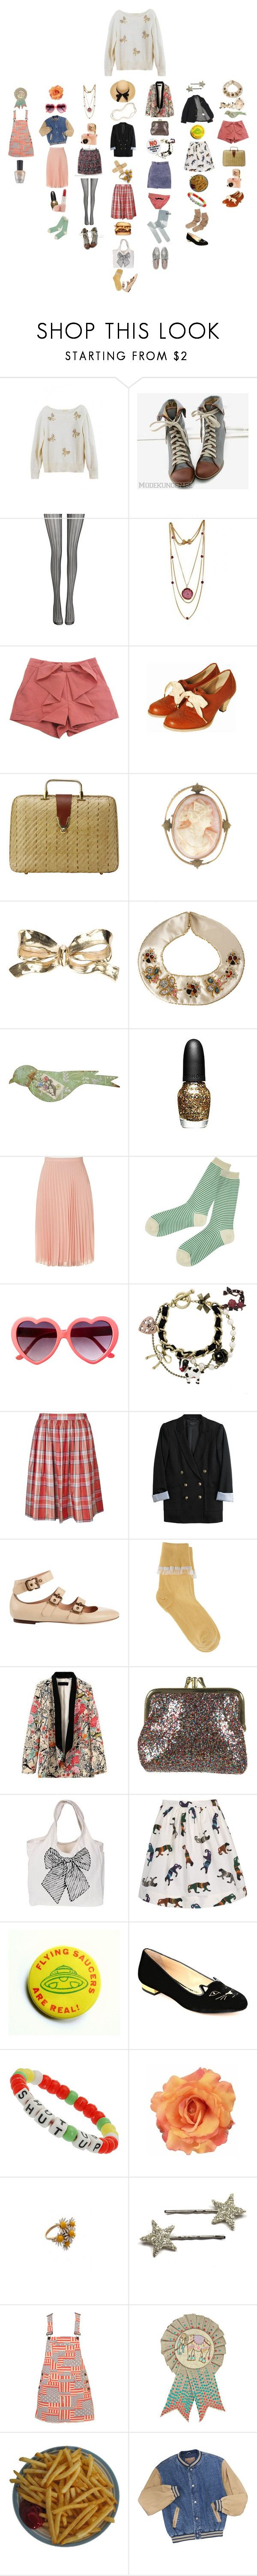 """Untitled #2172"" by duumbblond ❤ liked on Polyvore featuring Fogal, CO, Cameo, Yves Saint Laurent, ASOS, Sephora Collection, Jane Norman, Le Bac by united bamboo, Betsey Johnson and Alaïa"